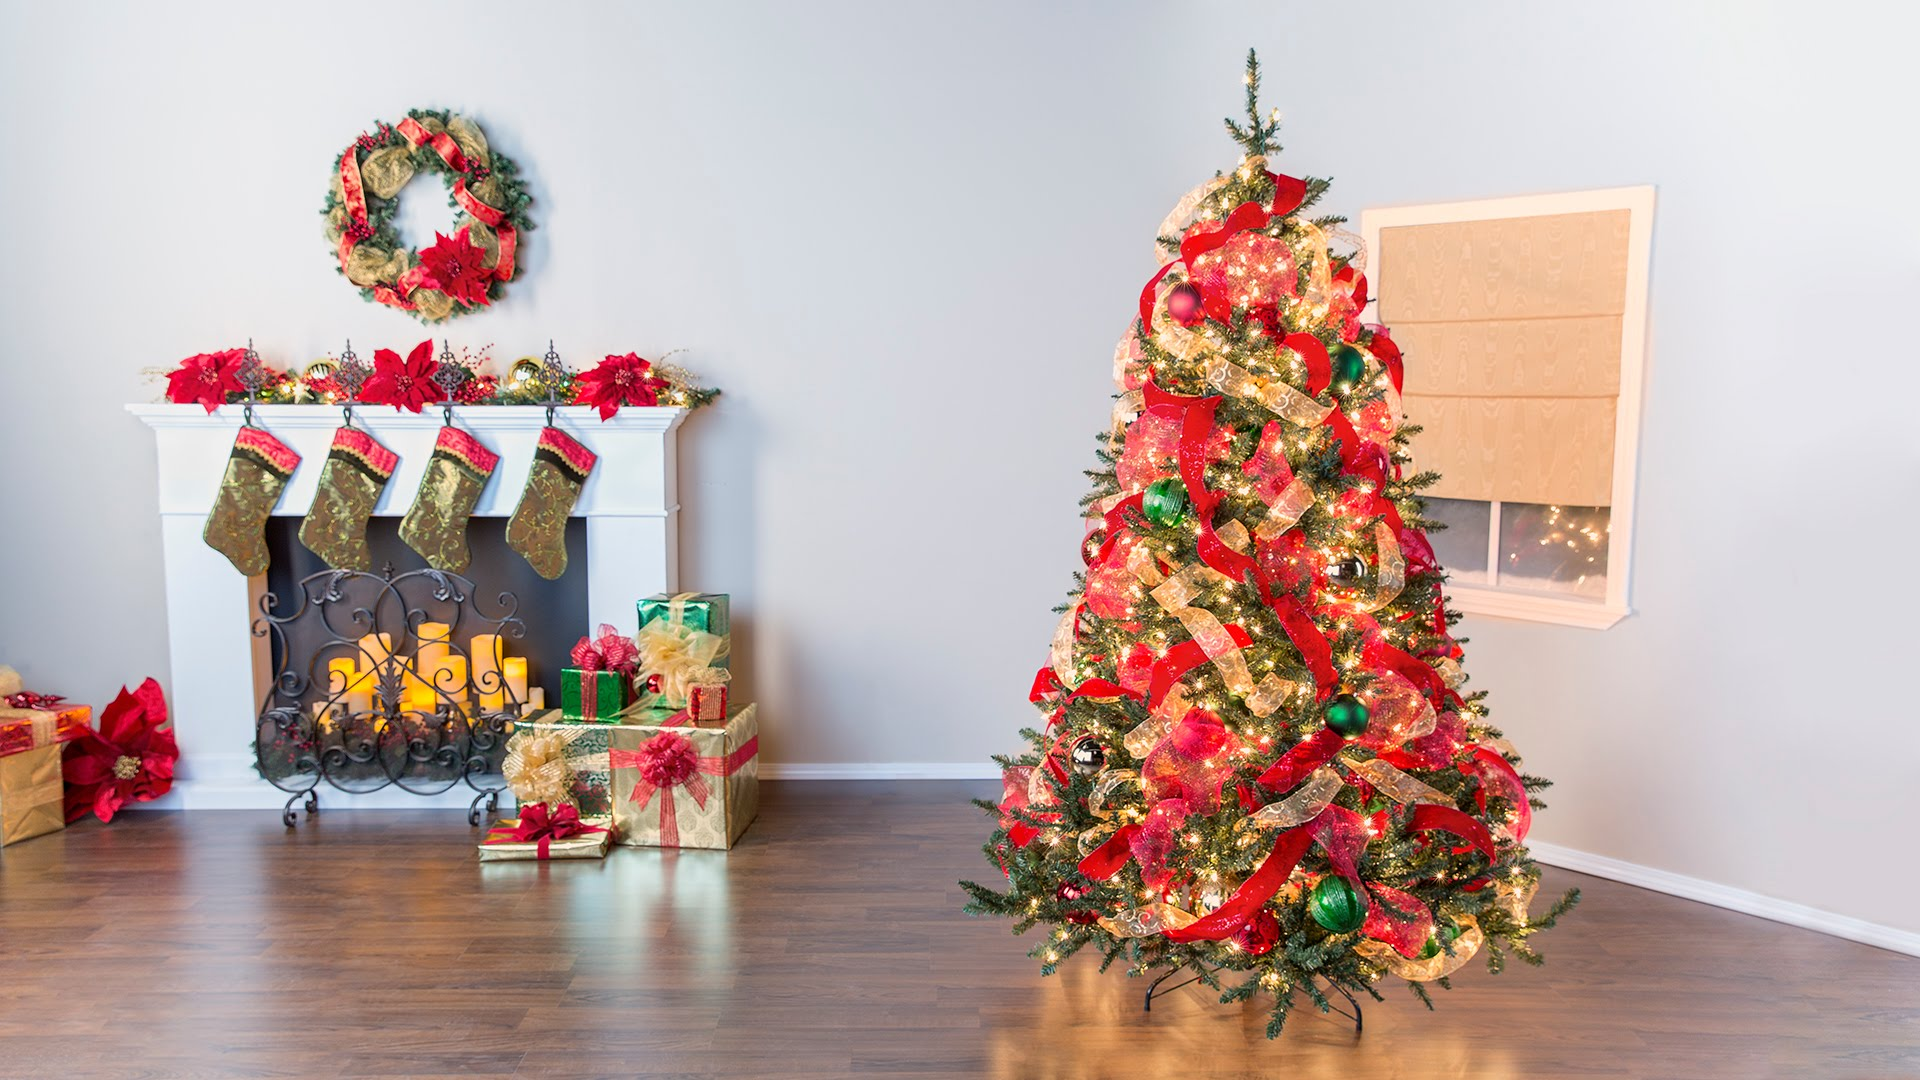 How To Decorate Christmas Tree.Christmas Decorating Essentials And How To Use Them